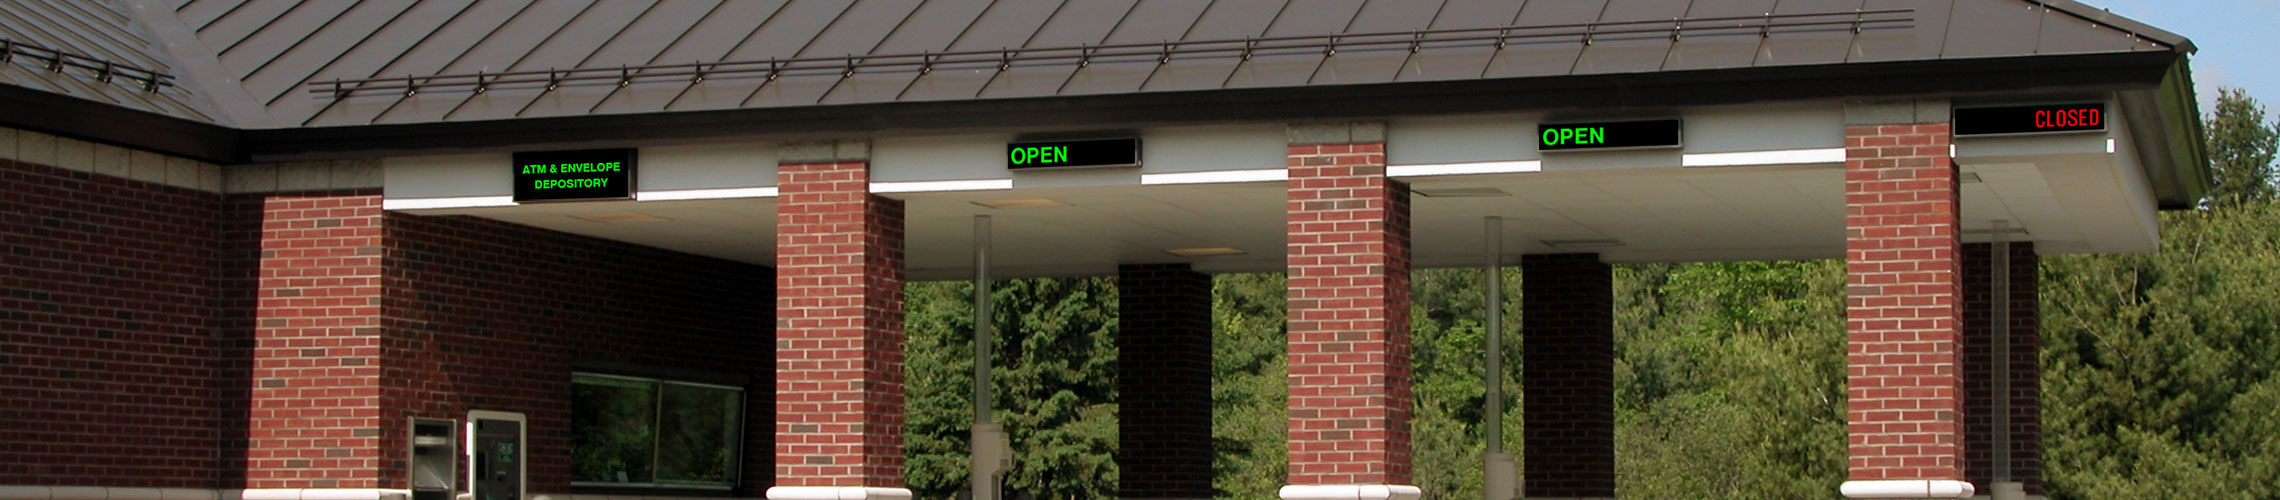 Outdoor LED Bank Drive Thru Signs